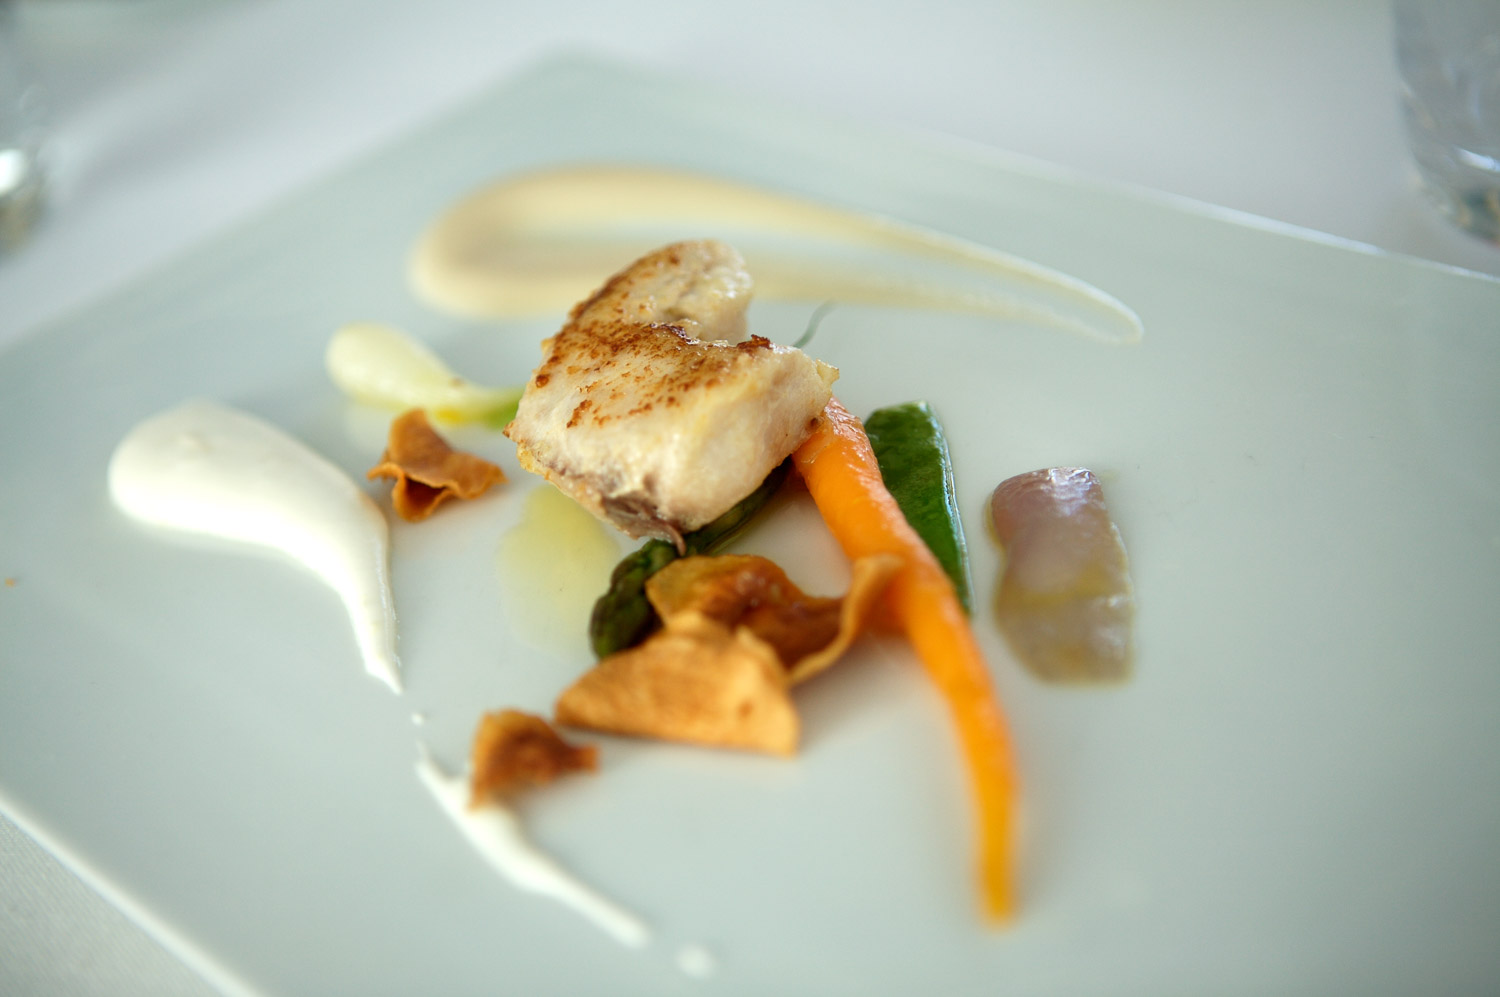 Scallop and roasted vegetables with lemon foam